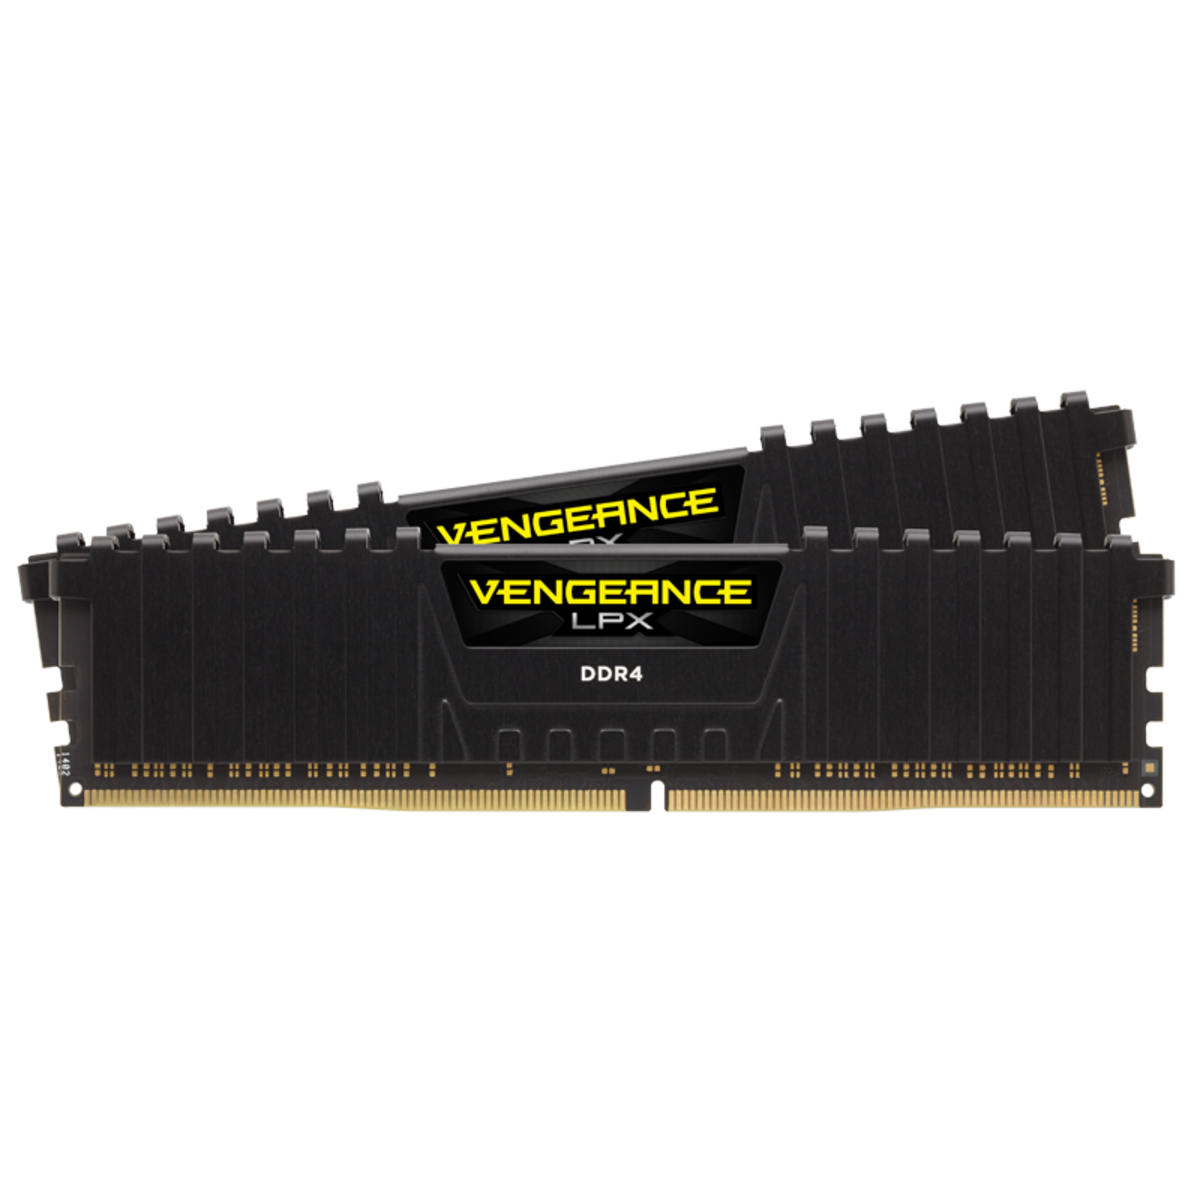 Corsair VENGEANCE LPX 16GB (2 x 8GB) DDR4 DRAM 3000MHz PC4-24000 CL16, 1.2V/1.35V